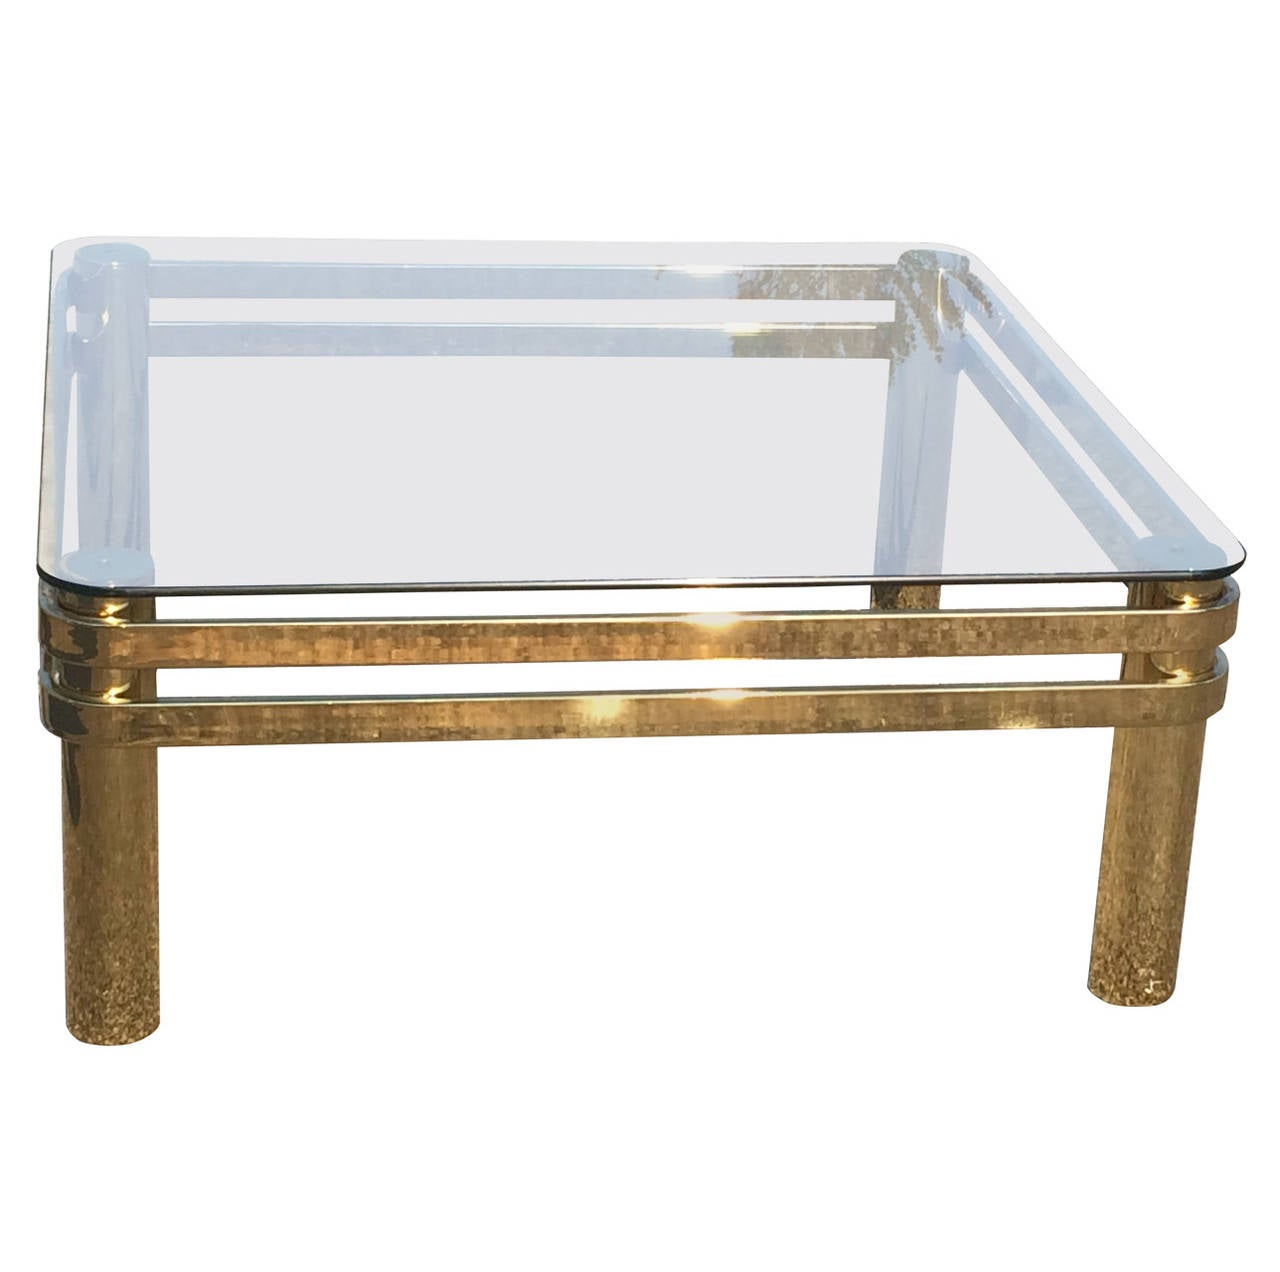 Hollywood Regency Brass And Glass Coffee Table Attributed